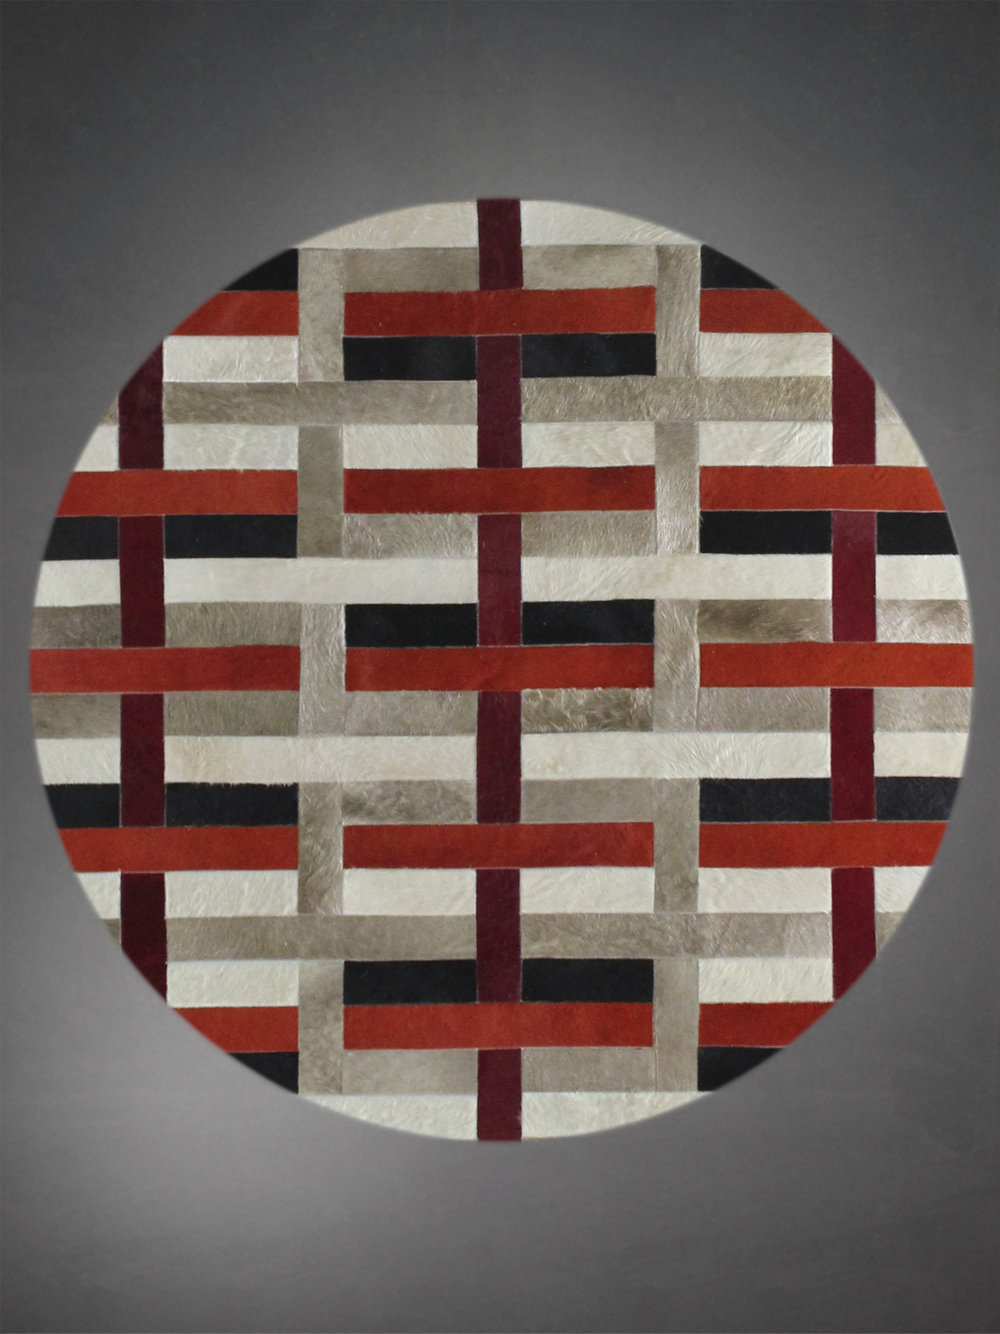 Contemporary designed fur circle rug in a geometric woven pattern in red and black.